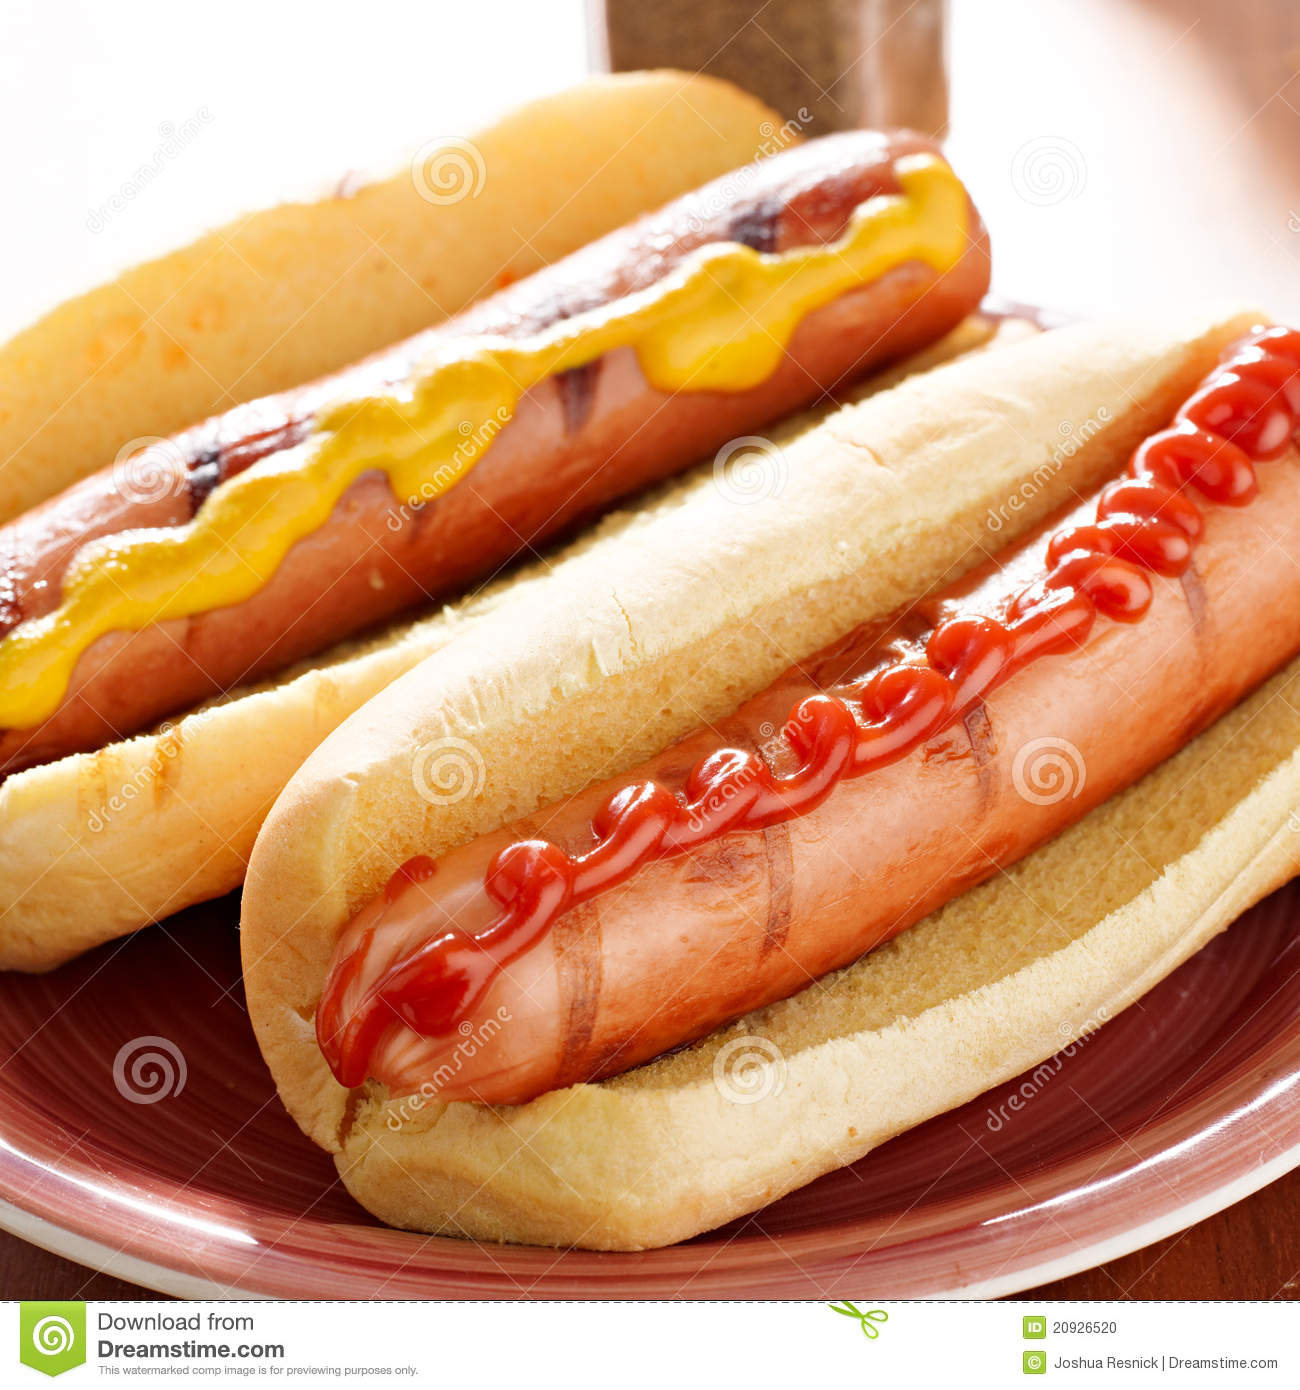 Hot Dogs Ketchup Or Mustard